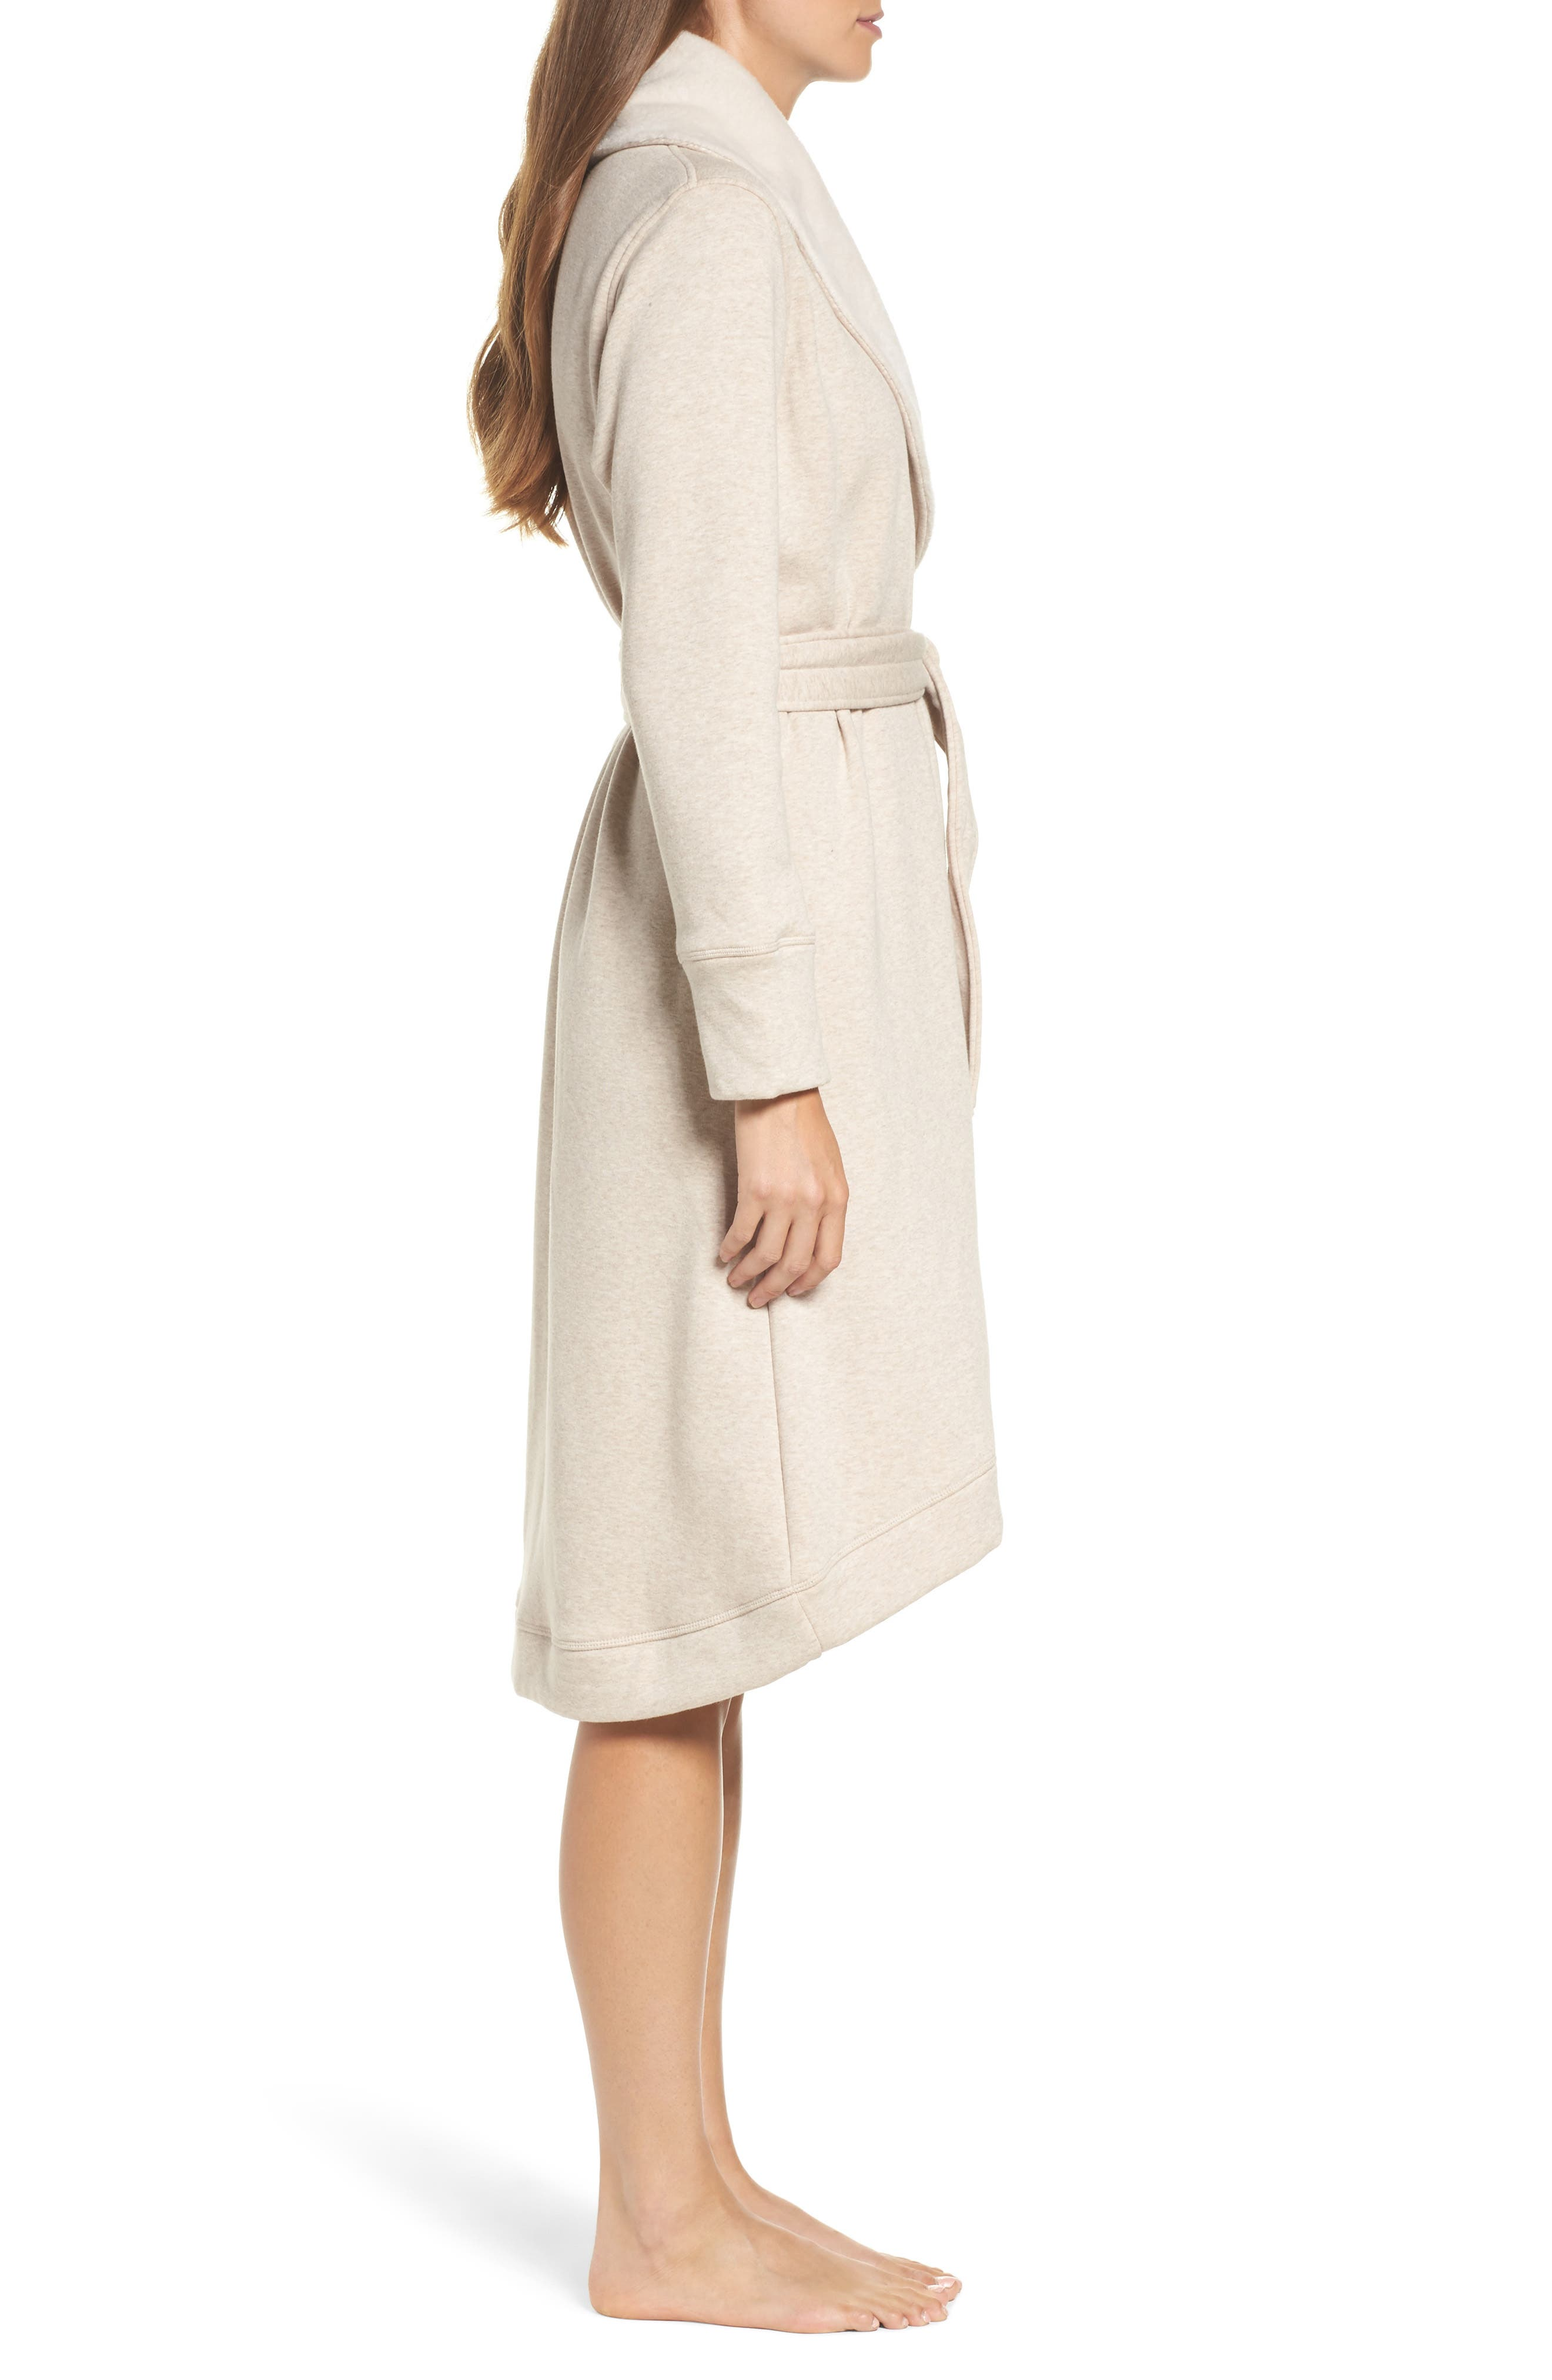 Duffield Double Knit Robe,                             Alternate thumbnail 3, color,                             Oatmeal Heather